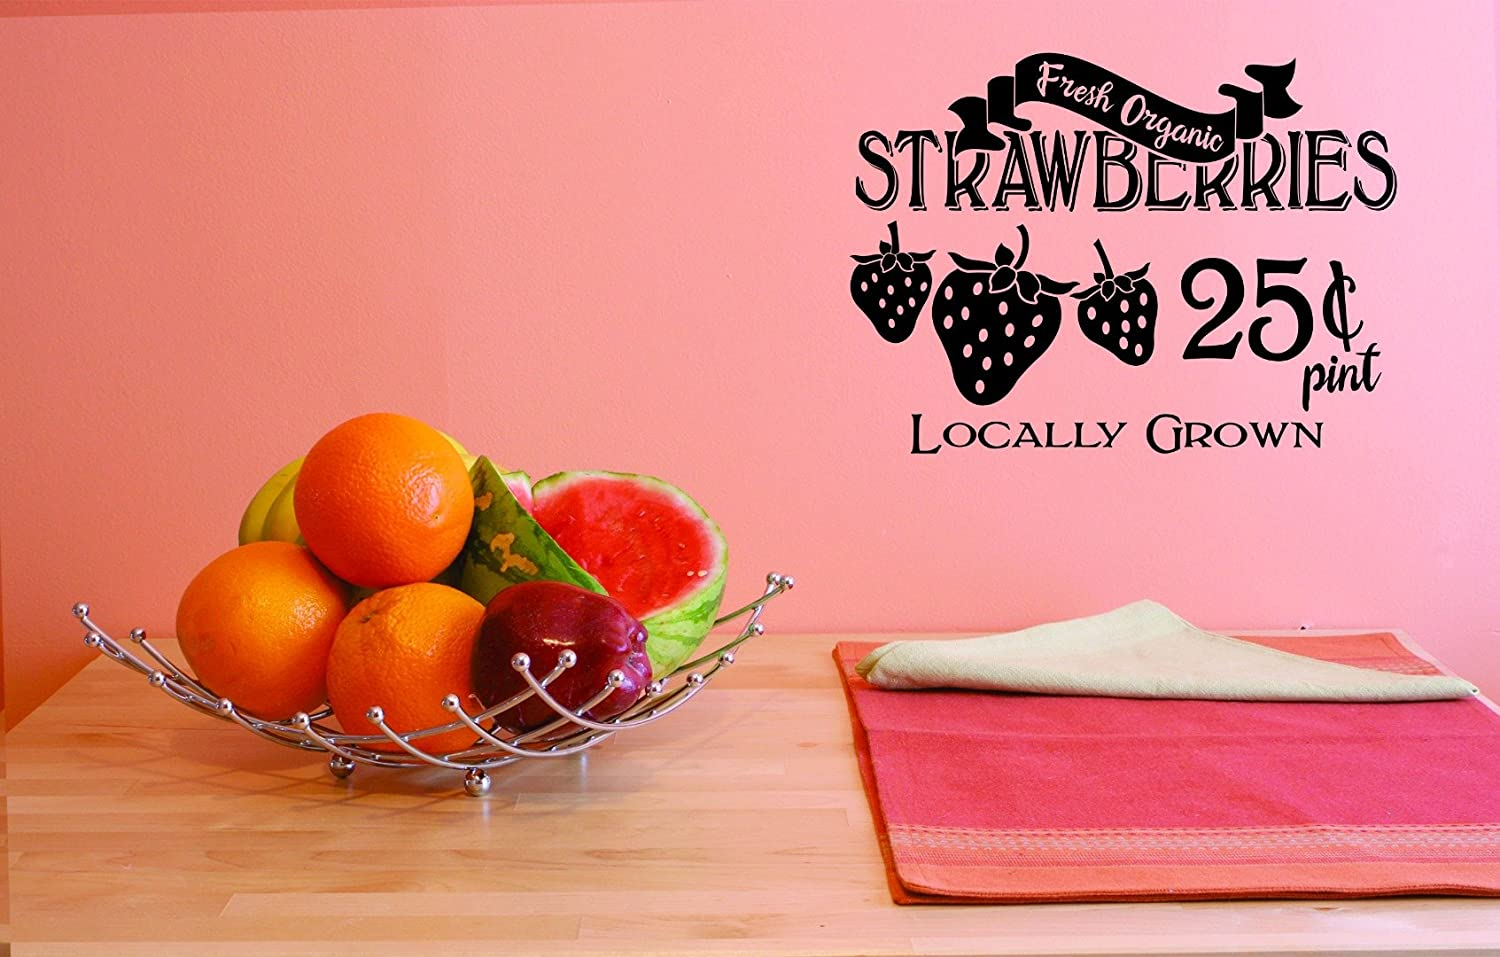 Design with Vinyl JER 1769 1 1 Hot New Decals Fresh Organic Strawberries 25 Cents Pint Locally Grown Wall Art Size 10 inches x 20 inches Color 10 x 20 Black